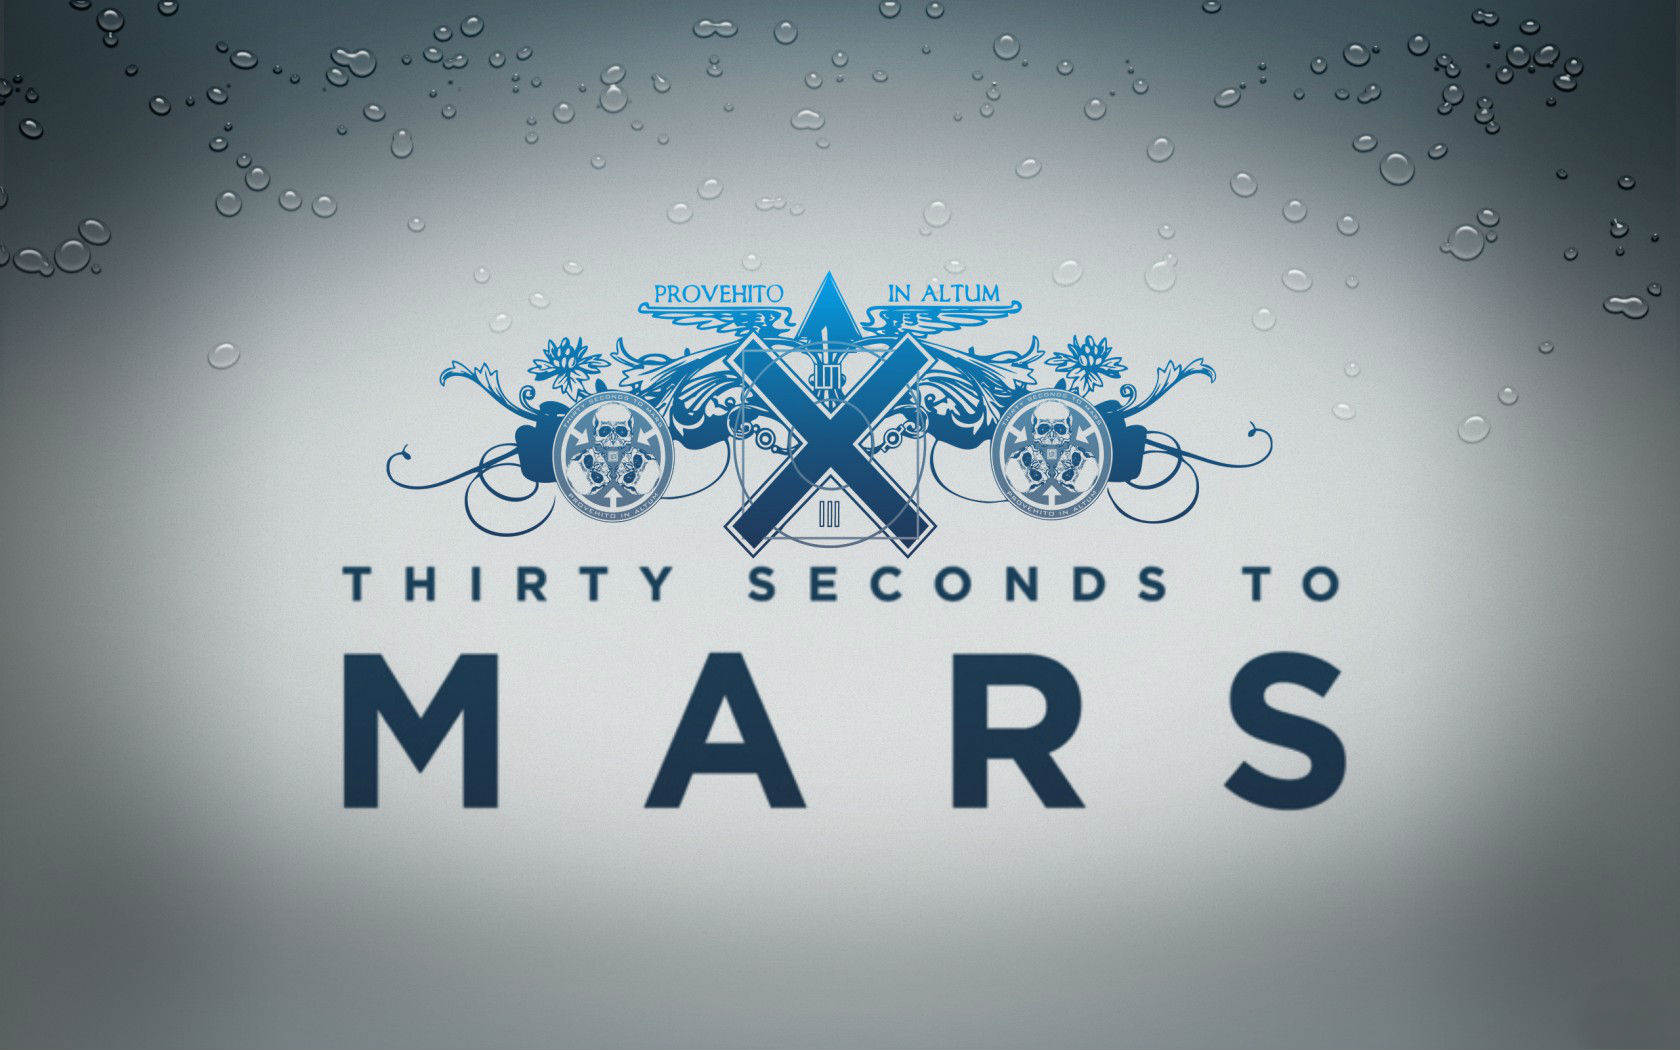 Logos 30 Seconds To Mars Wallpapers - 1680x1050 - 221795